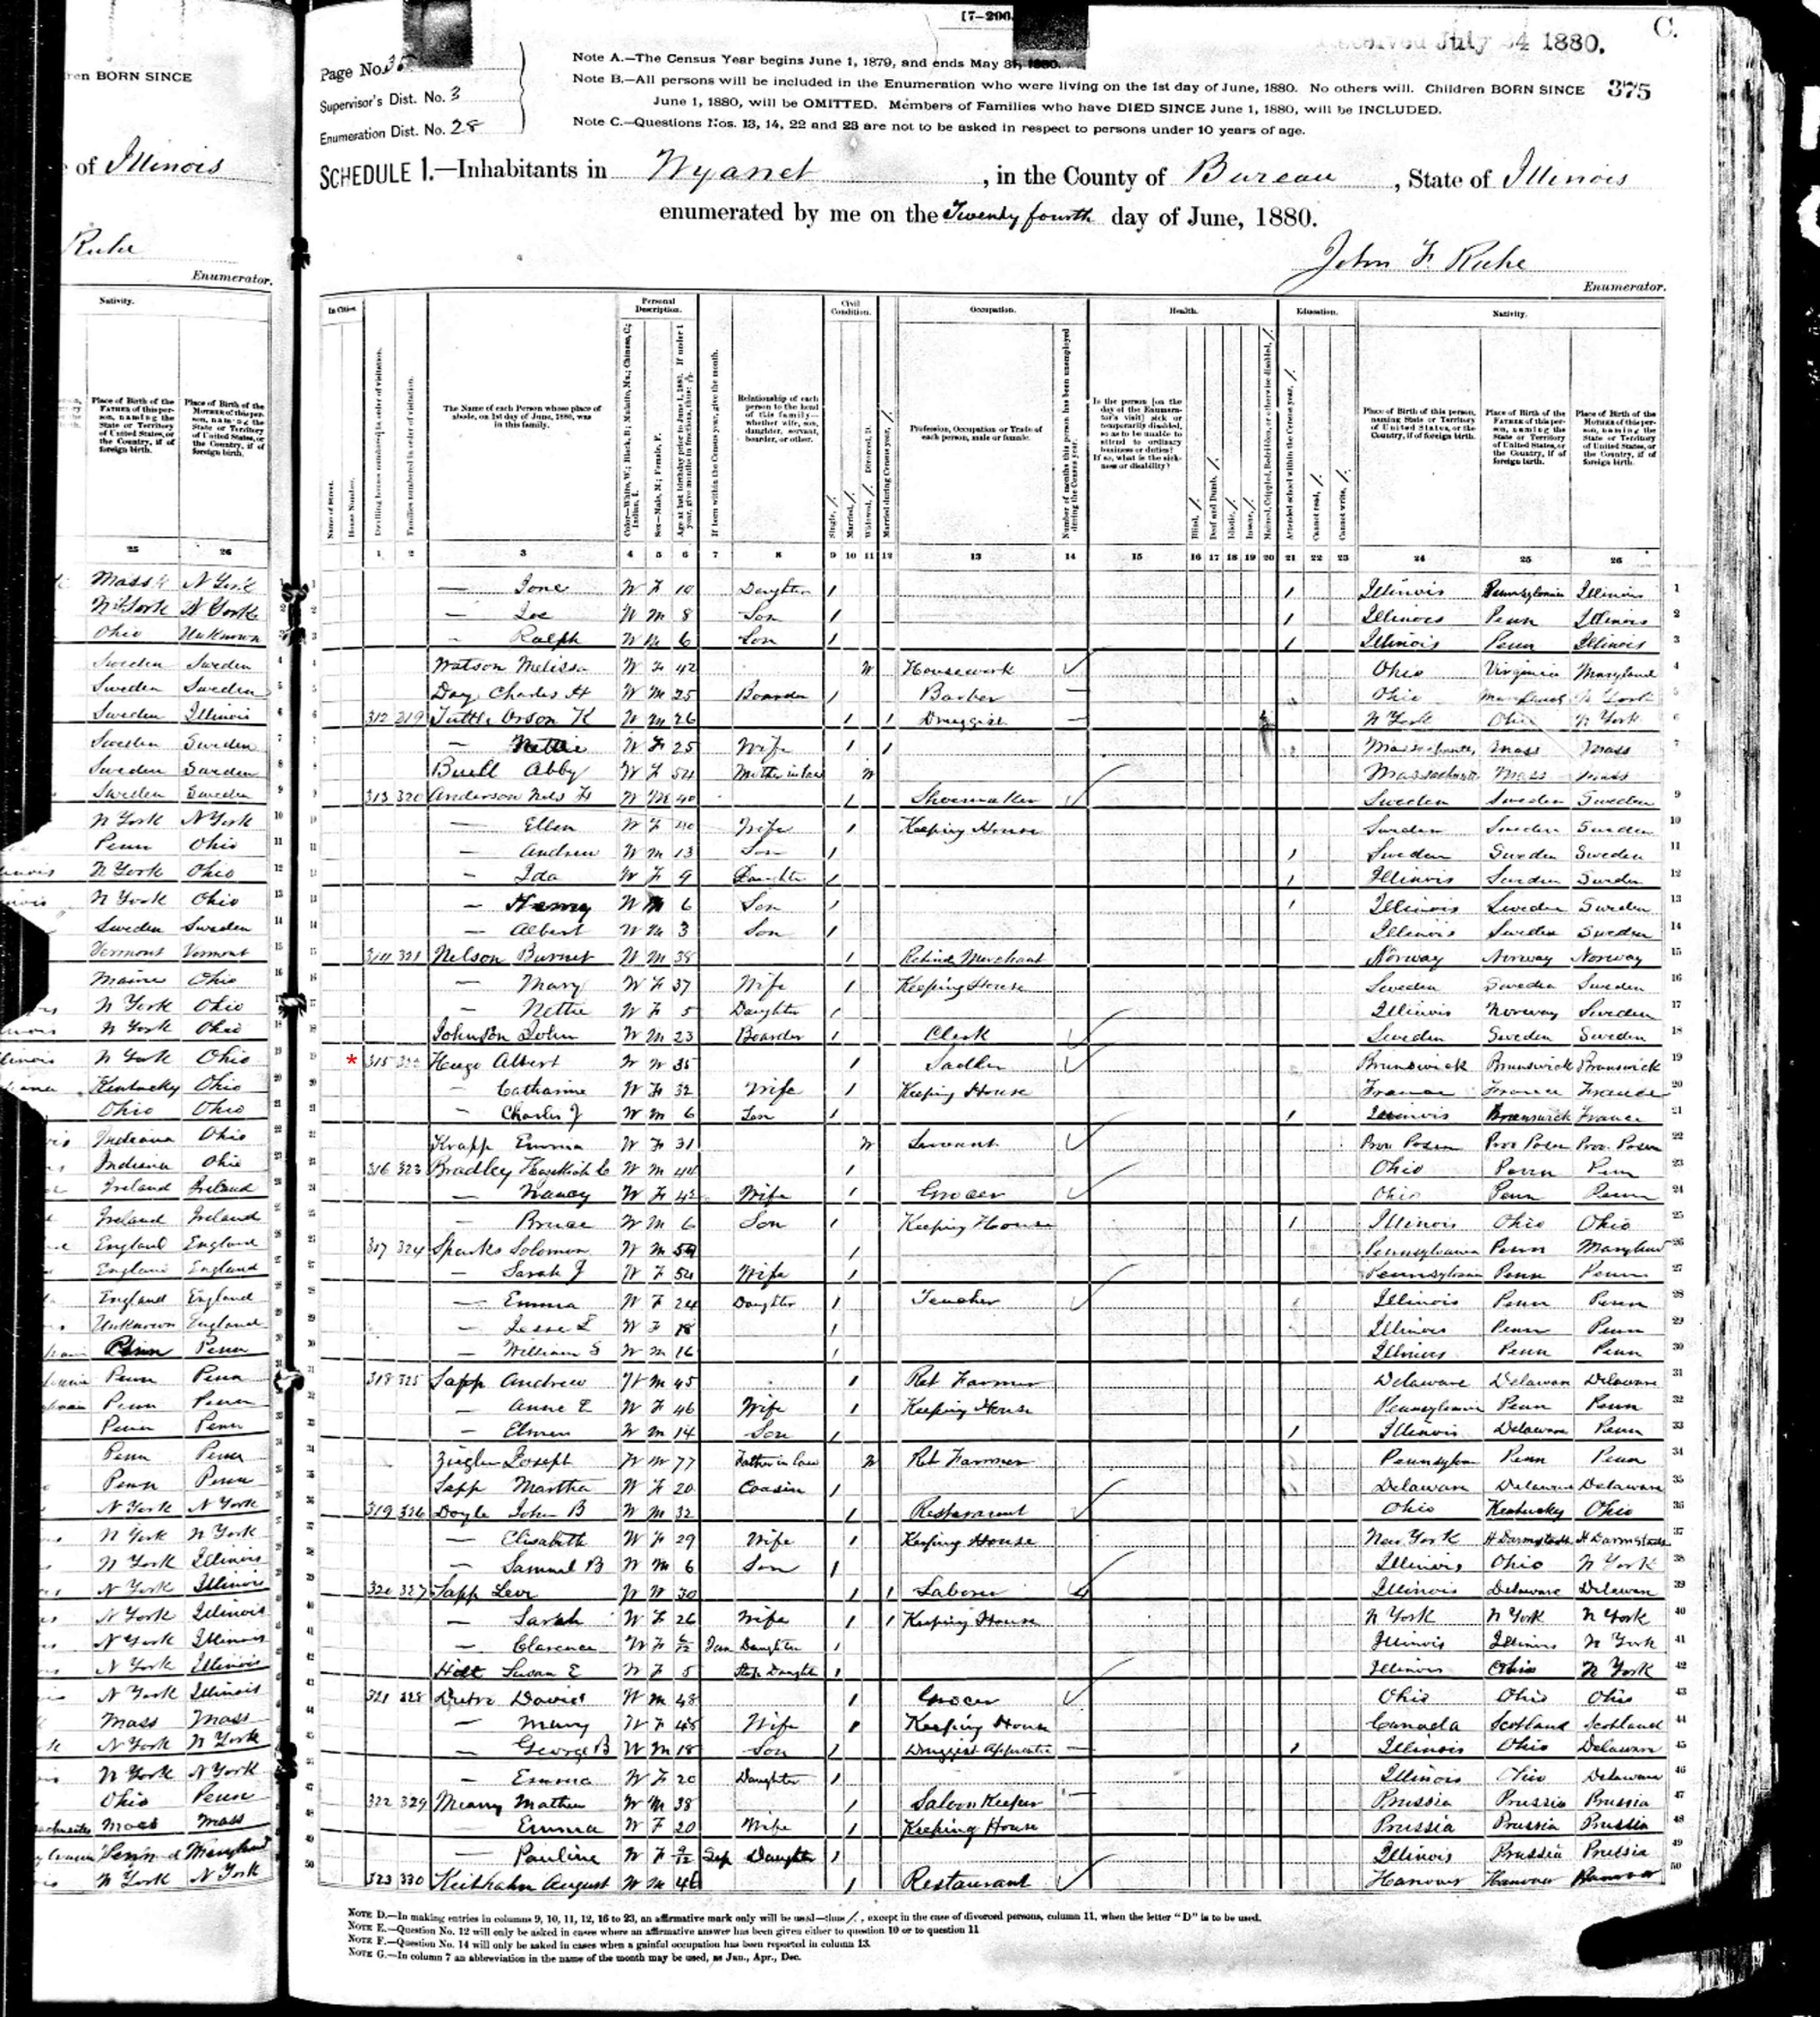 Illinois bureau county princeton -  Moving To Topeka Shawnee County Kansas He Acquired A Job As A Clerk And Timekeeper For The Atchison Topeka Santa Fe Railroad Working With His